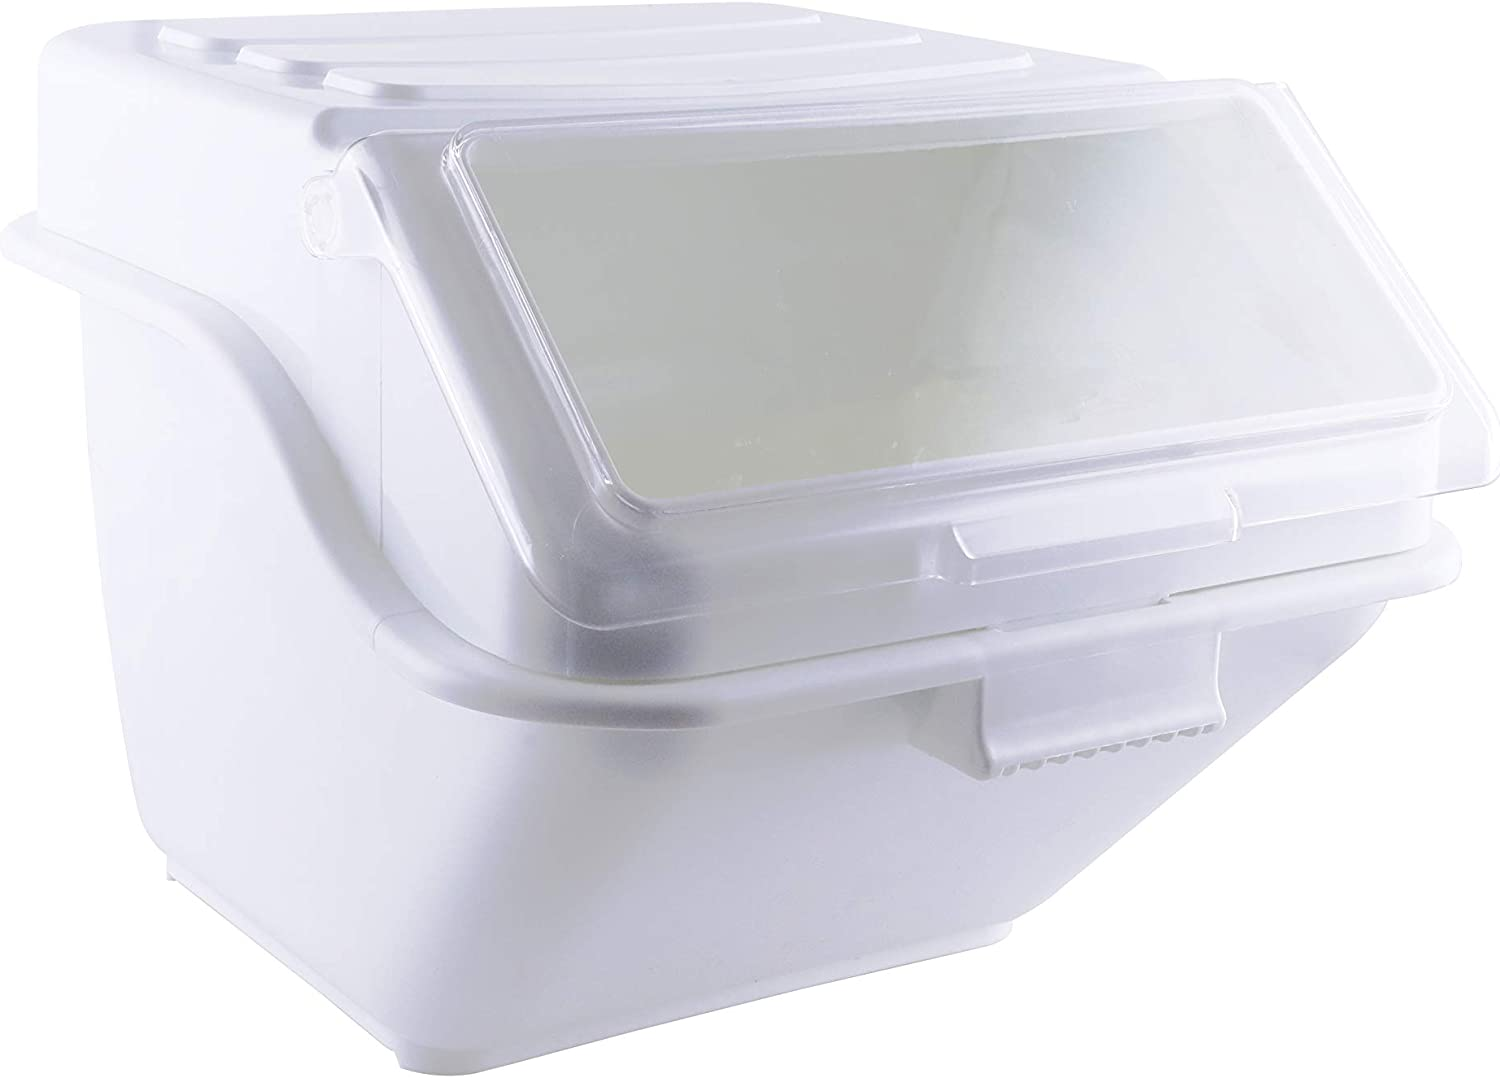 Caspian 12.6 gallons/ 200 cups Shelf-Storage Ingredient Bin with Scoop and Sliding Lid Commercial Food Storage for Kitchen,1 Piece (12.6 gallons/ 200 cups.)